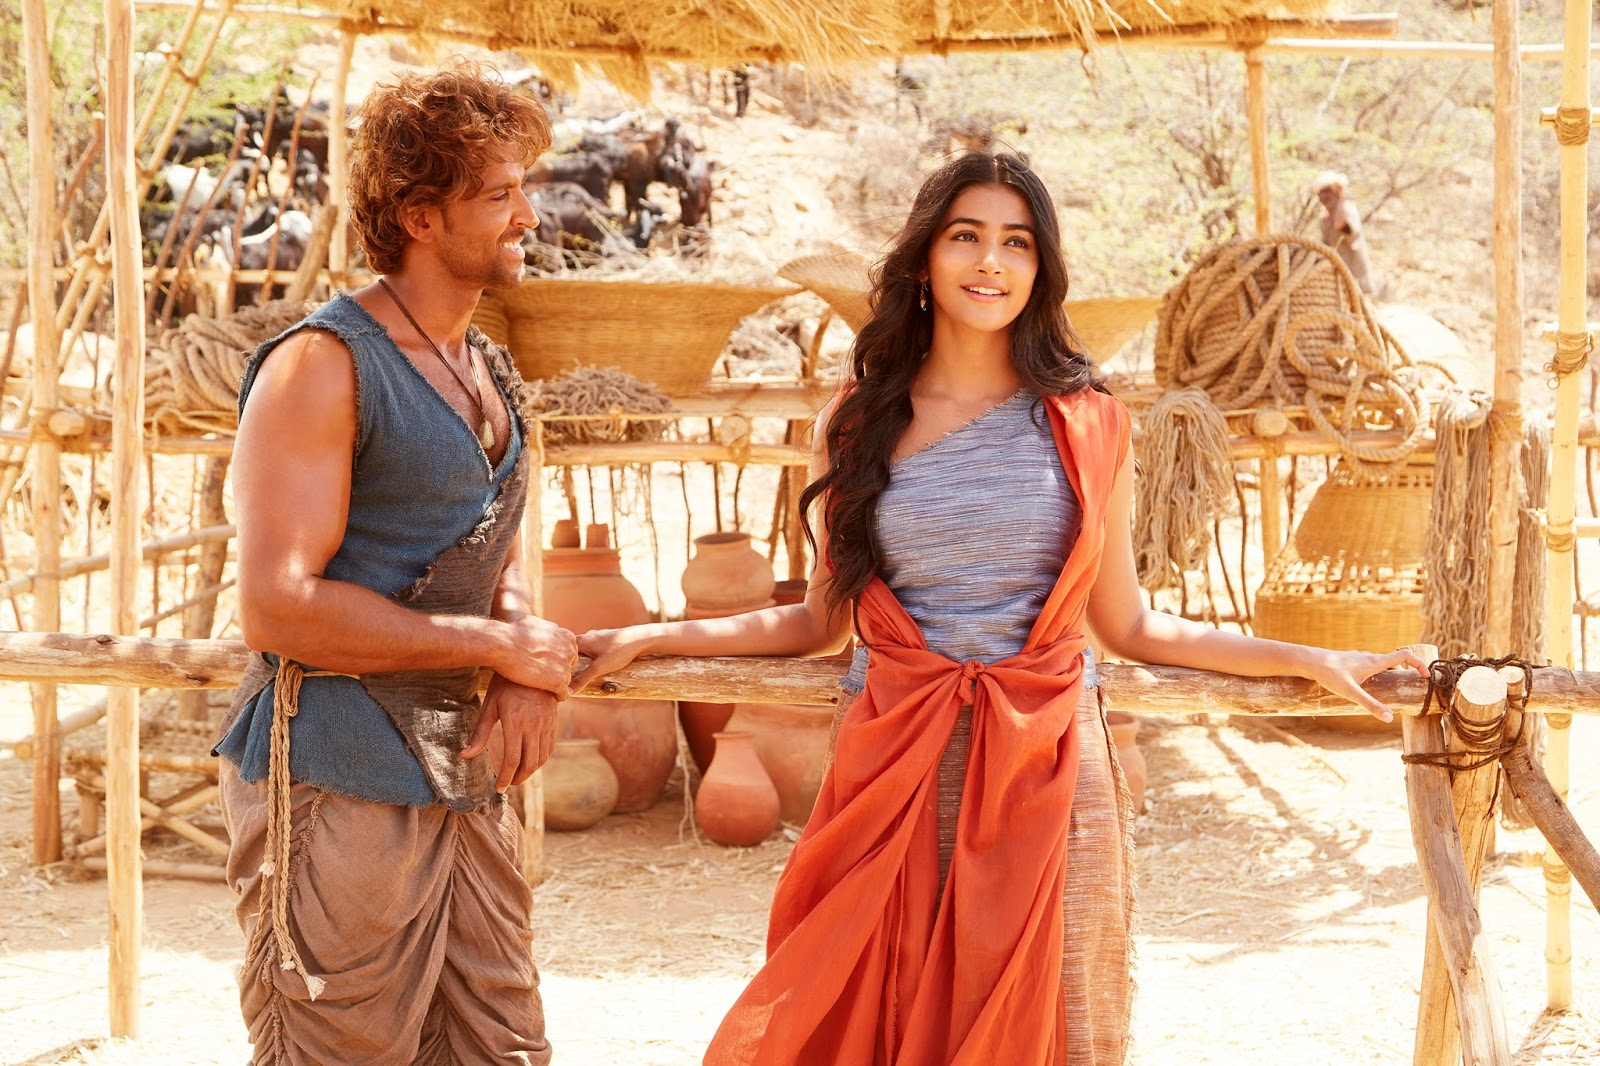 diary of a dancebee what were your references for the costumes and looks of the characters in mohenjo daro